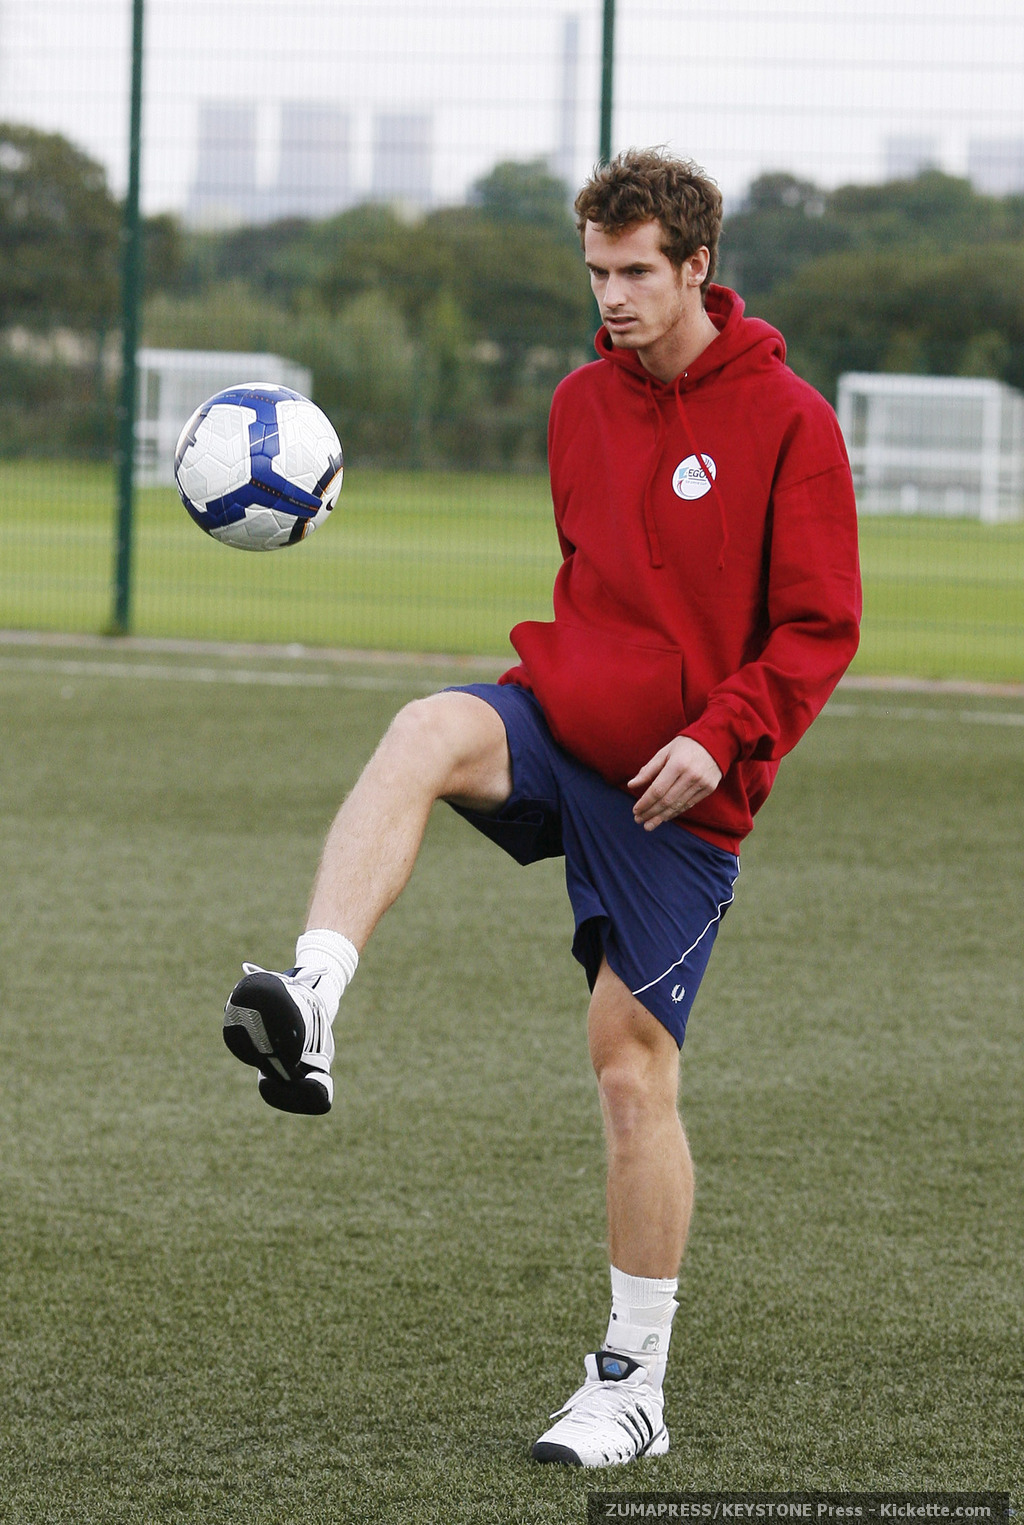 Tennis/Football - Andy Murray visits the Everton FC Training Ground prior to the GB Davis Cup tie at the Liverpool Echo Arena - Everton Training Ground, Finch Farm - 15/9/09..Great Britain's Andrew Murray(Credit Any Usage: ©ZUMAPRESS.com/Keystone Press)